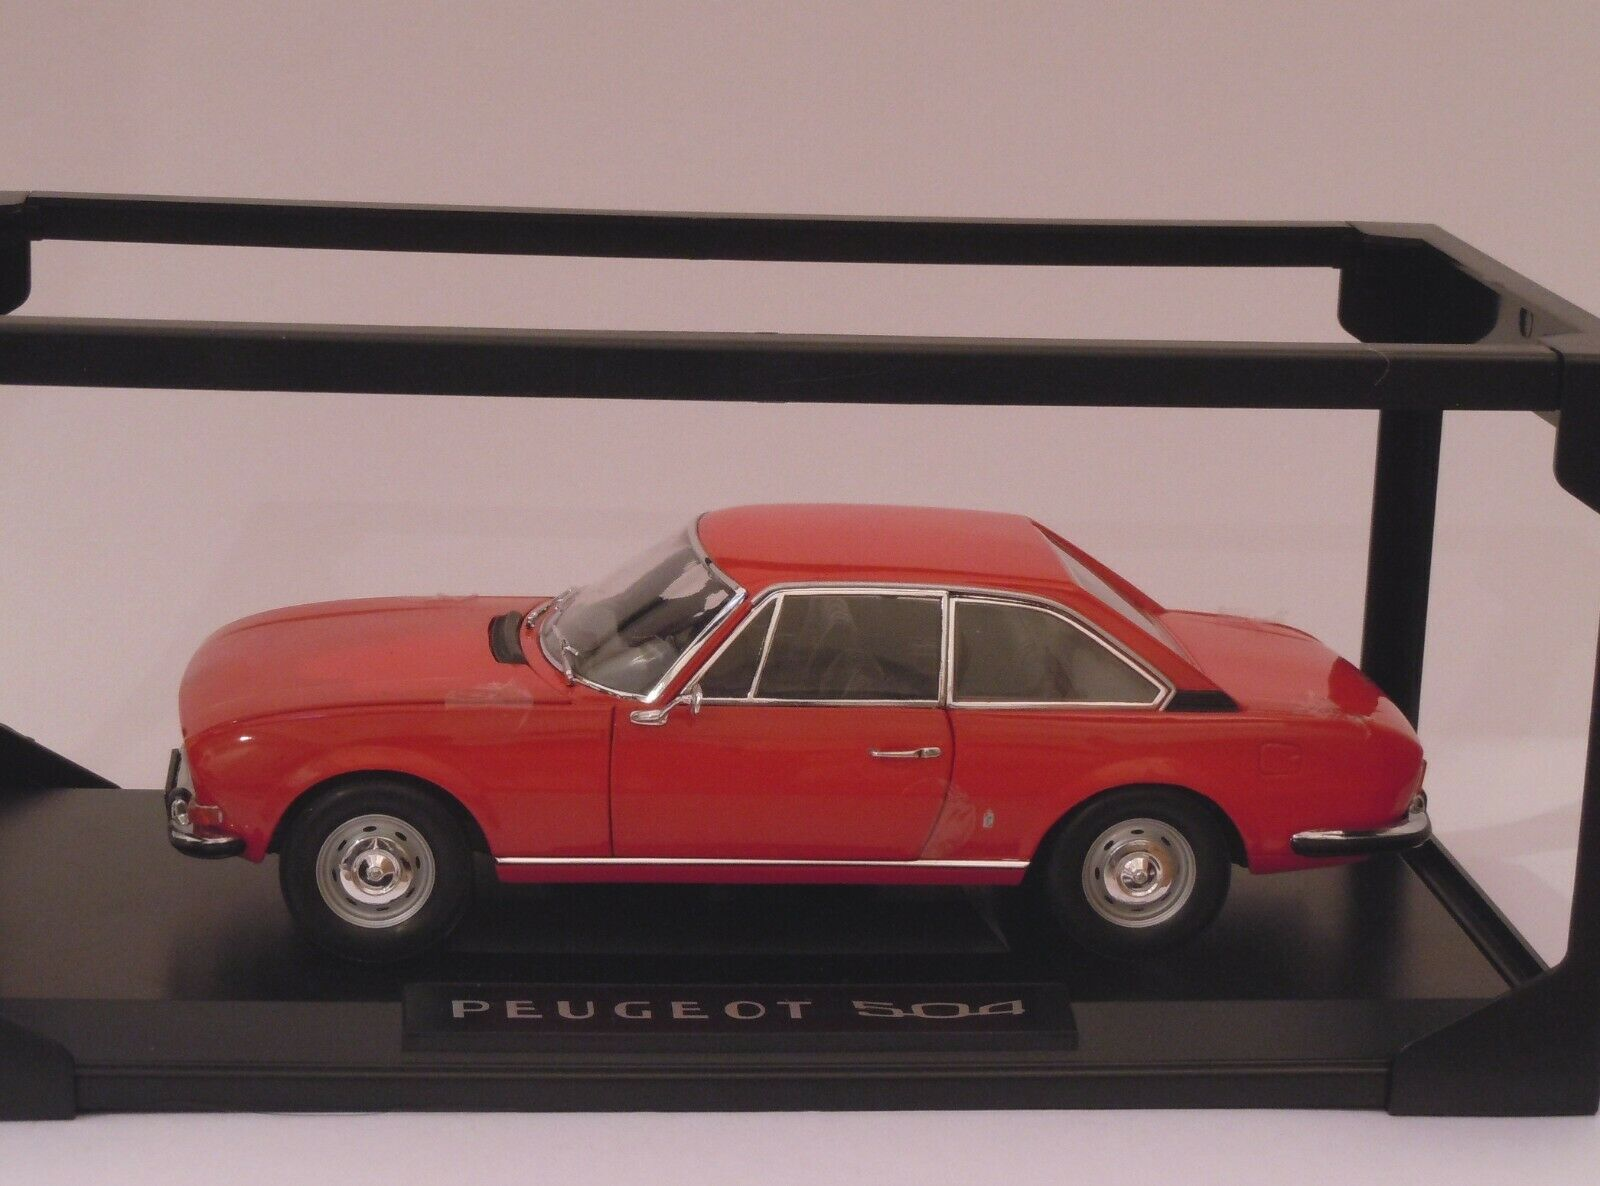 PEUGEOT 504 rojo DIECAST SCALE 1 18 NEW NEW NEW c152ea